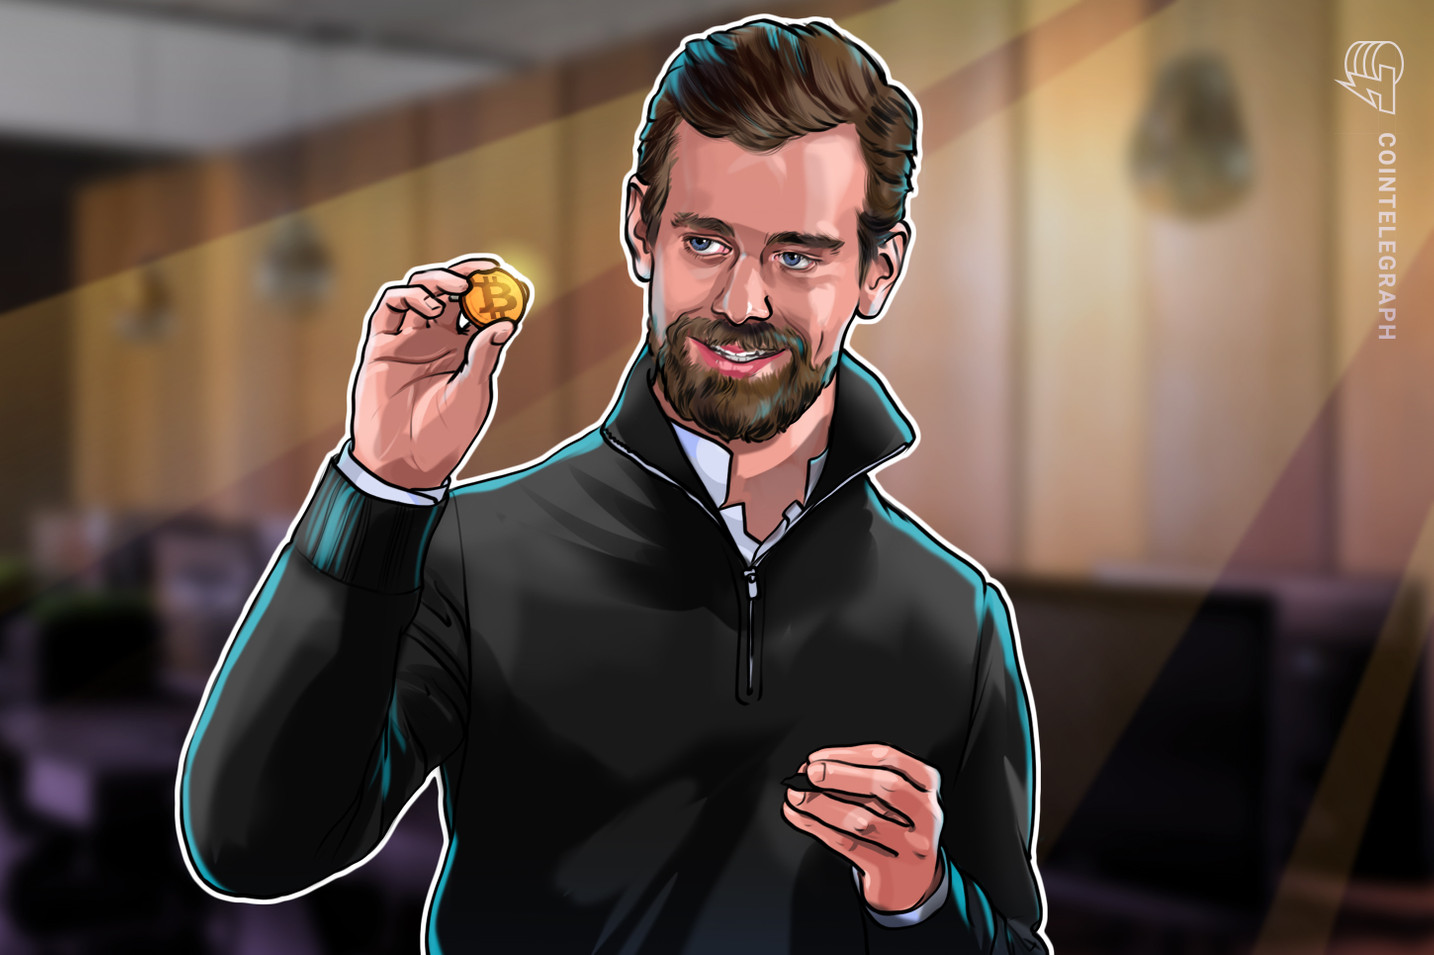 DeFi on Bitcoin: Jack Dorsey launches new Square division to make it 'easy'